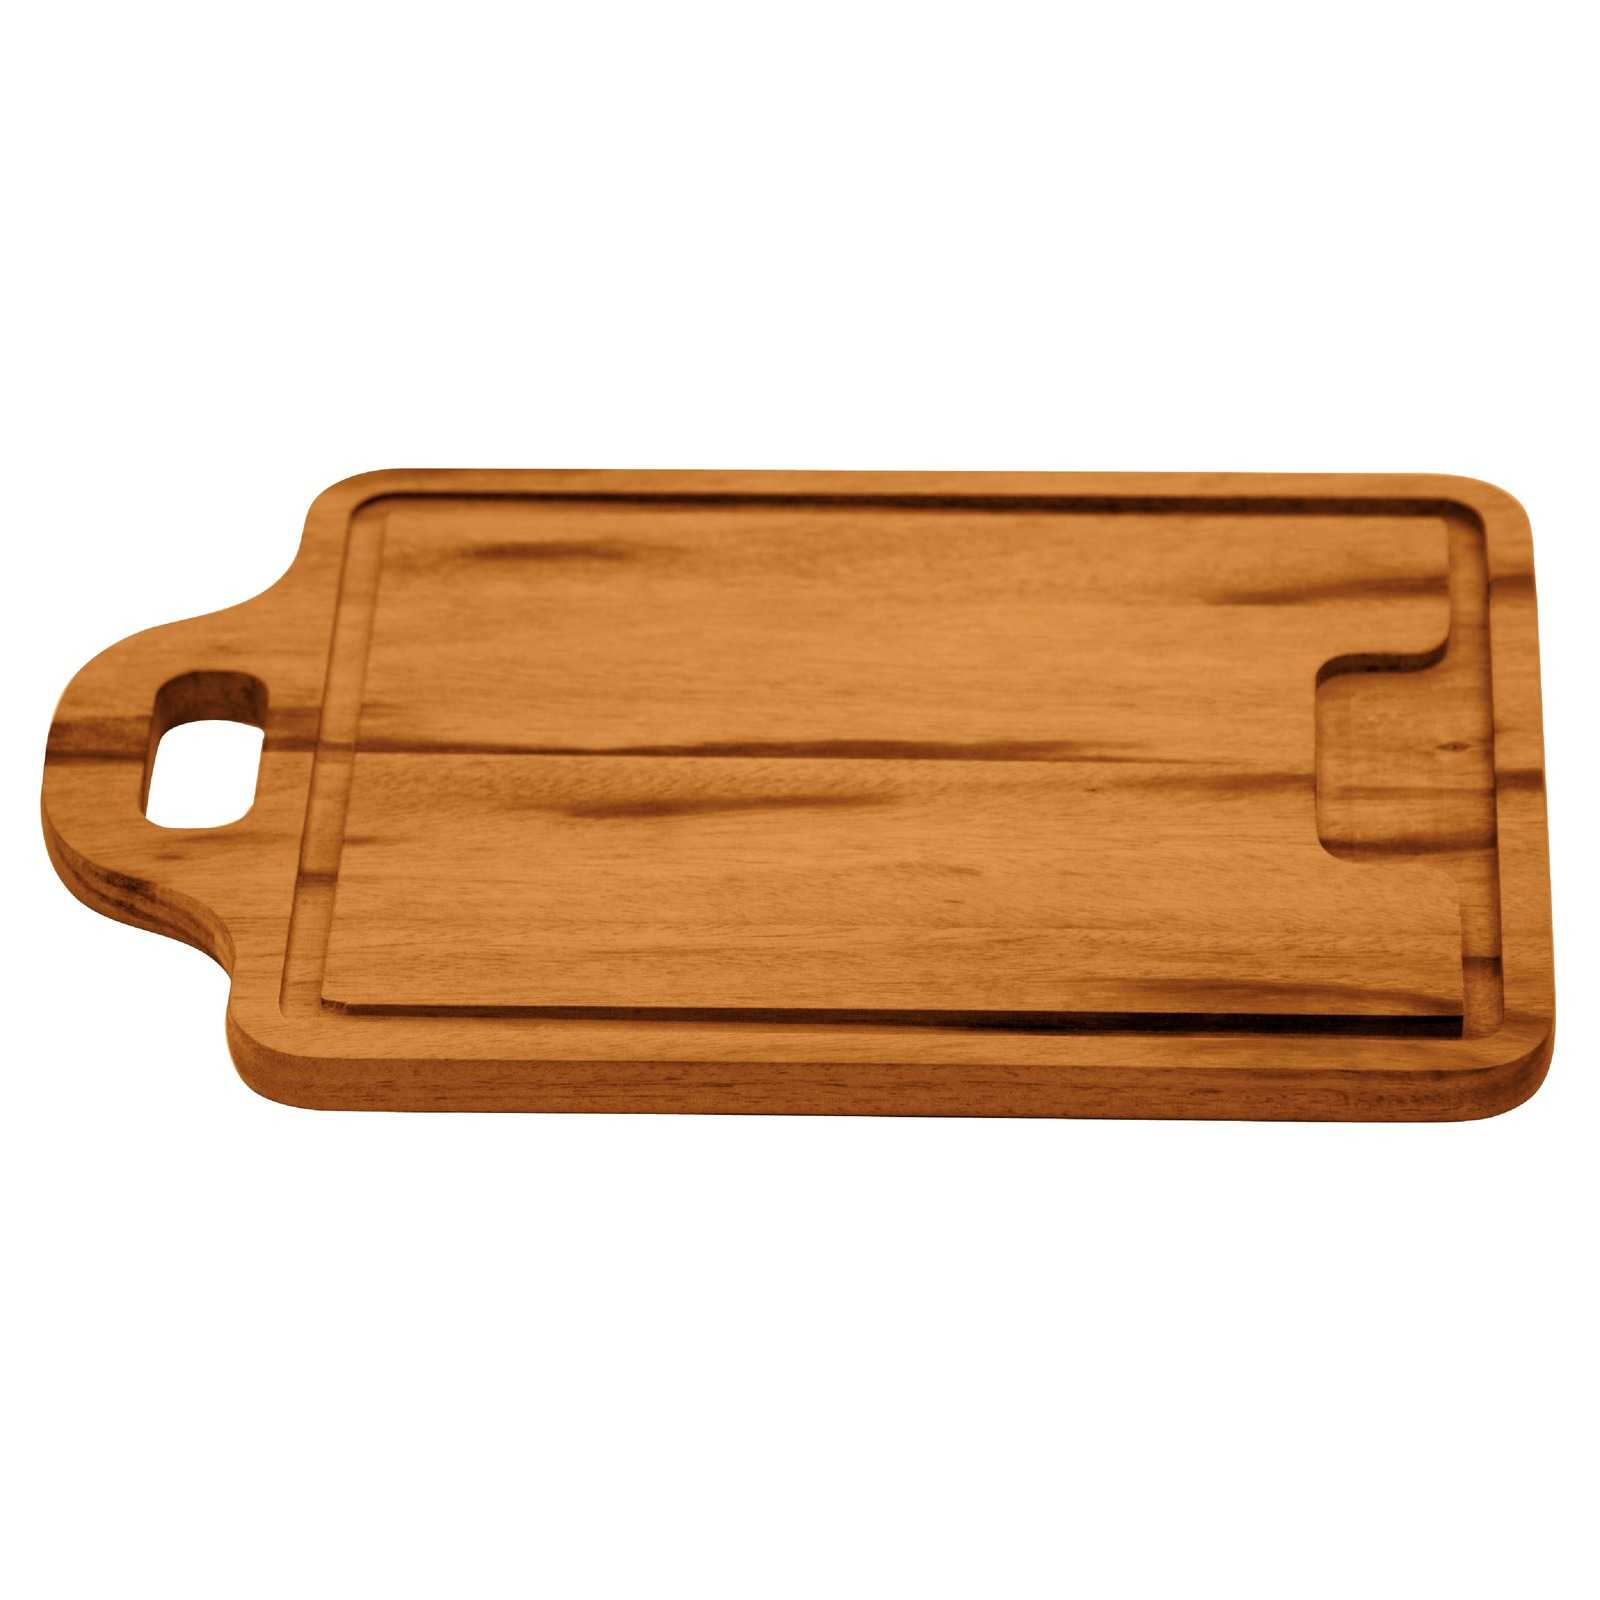 Tramontina Cutting and serving board L34.0 x W23.0 x H1.5 cm